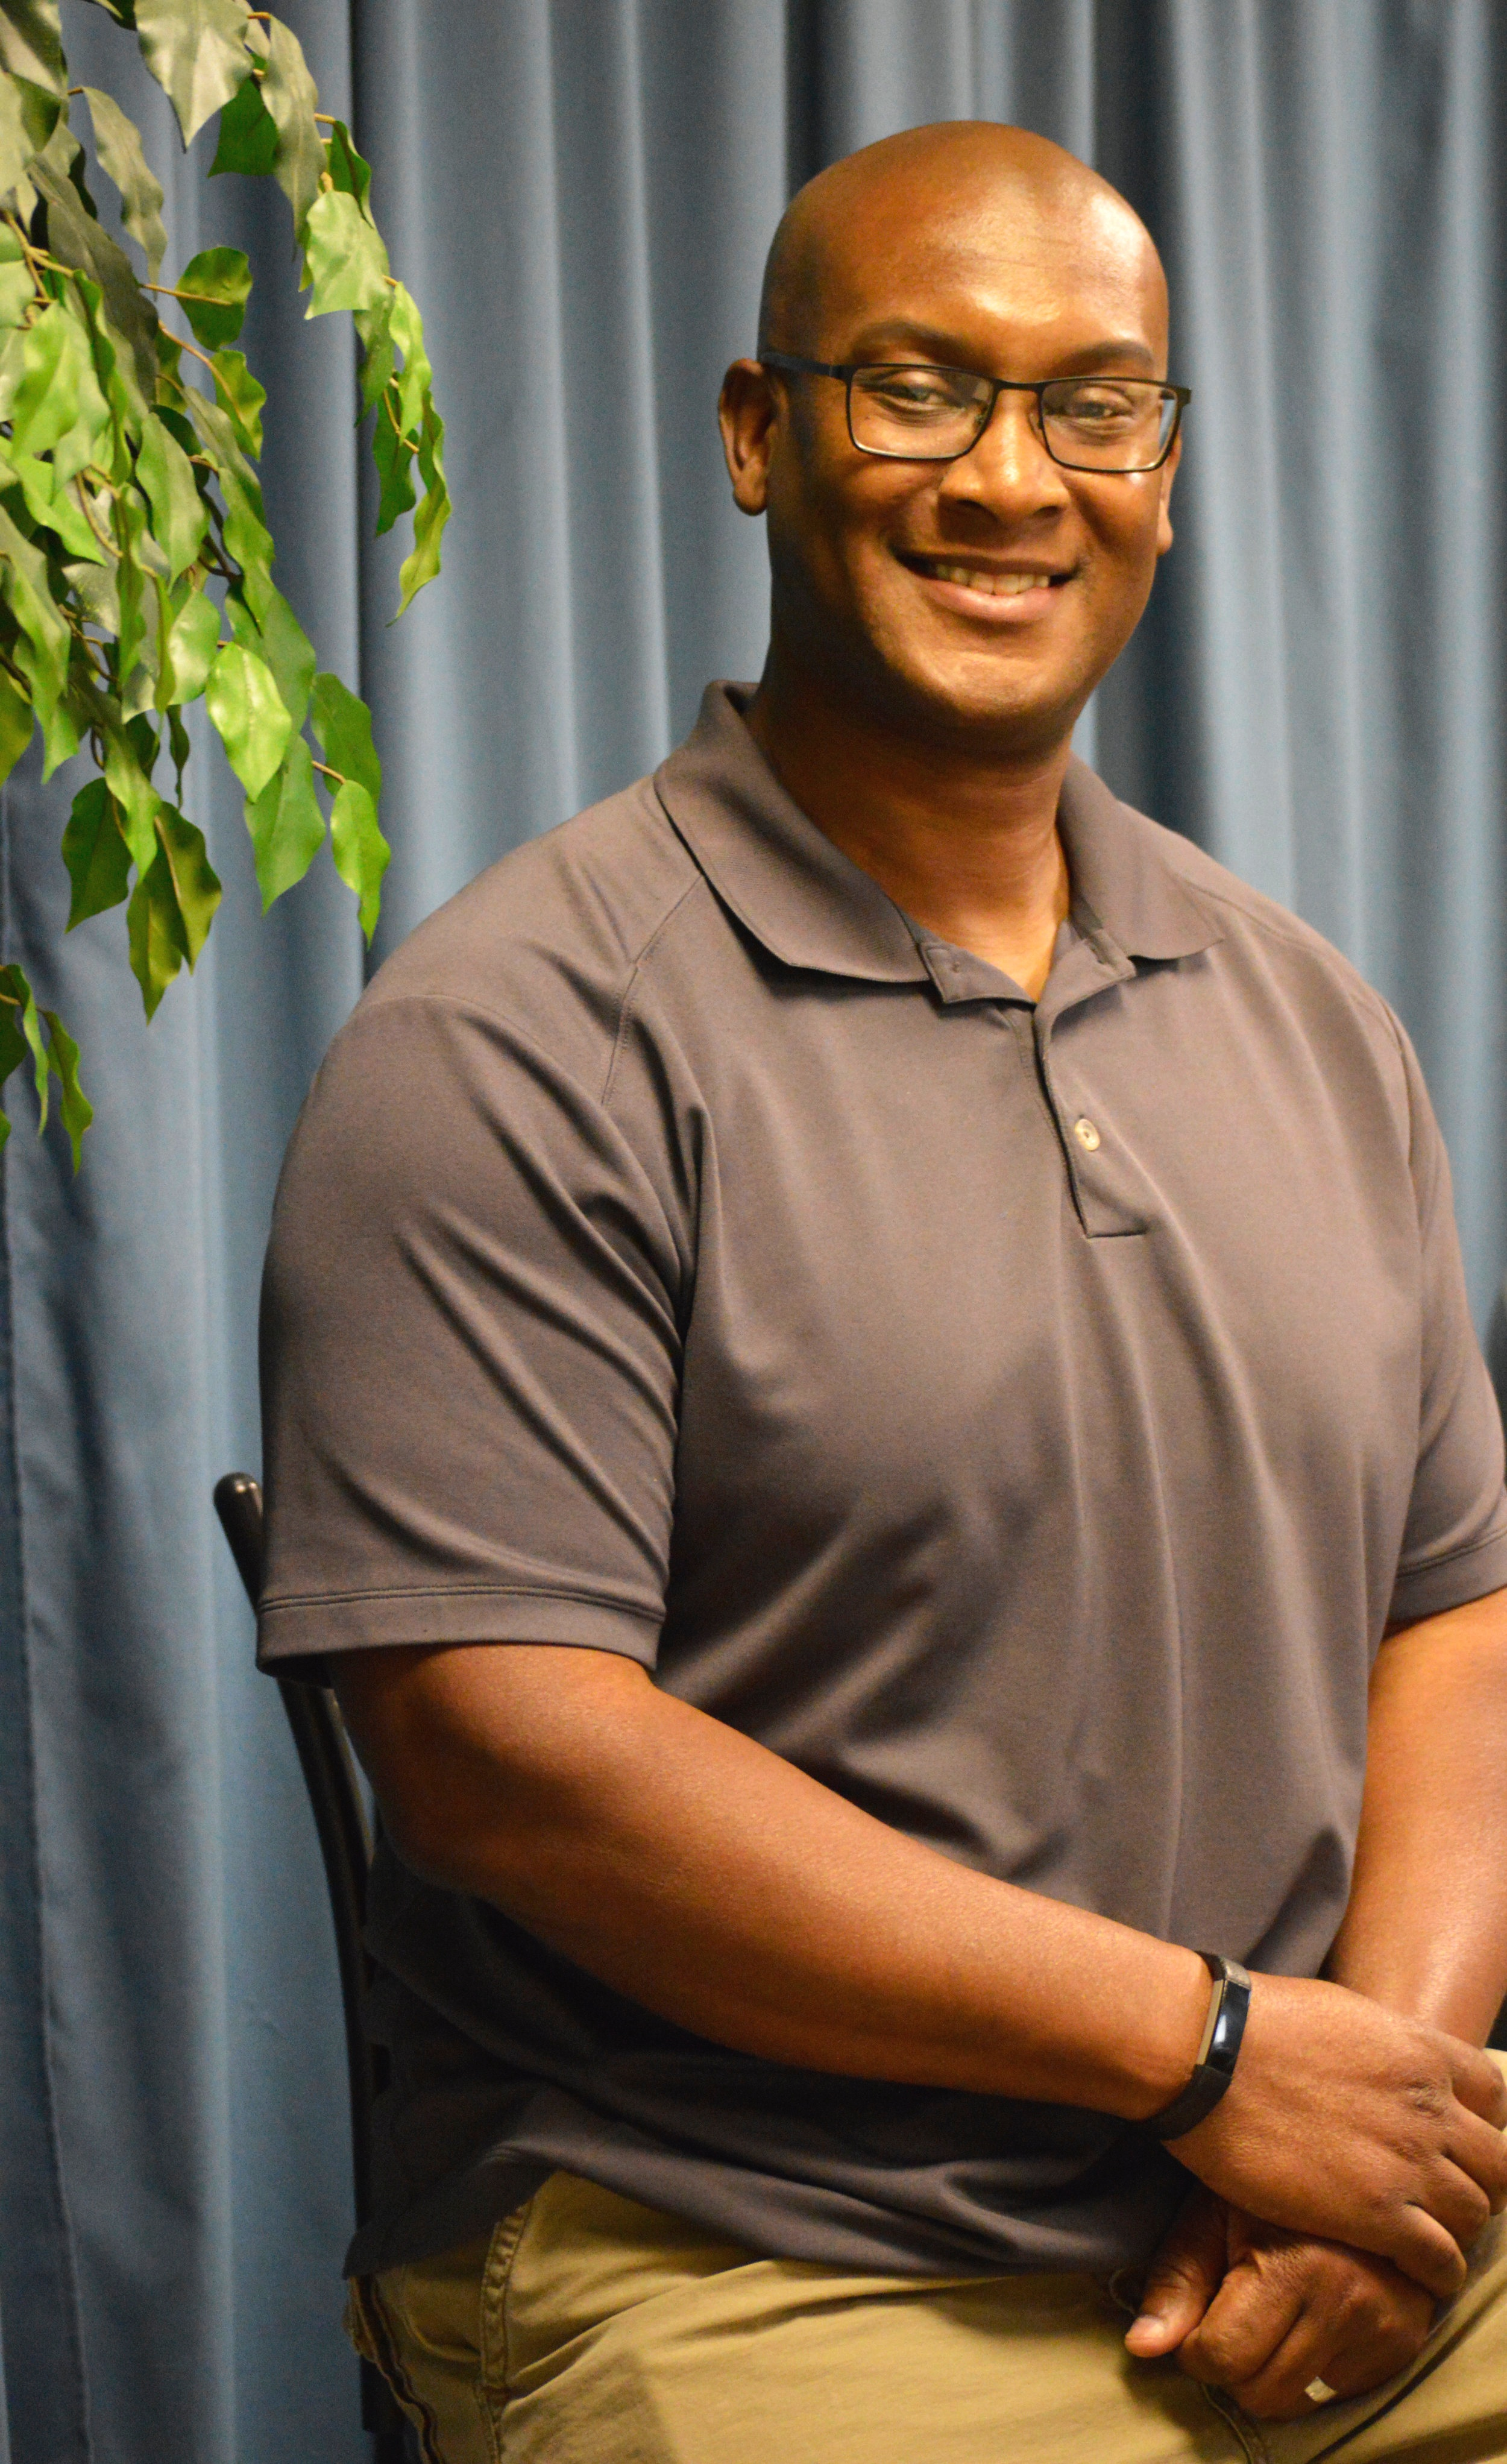 David Gibson - Deacon    David Gibson  is a newly indoctrinated deacon, here at our congregation in Irving. He has shown a great understanding in the Word and is highly skilled in conveying his thoughts and interpretations. Speaking on first and third sabbaths, it's agreed that his delight and excitement of what is written is truly infectious.